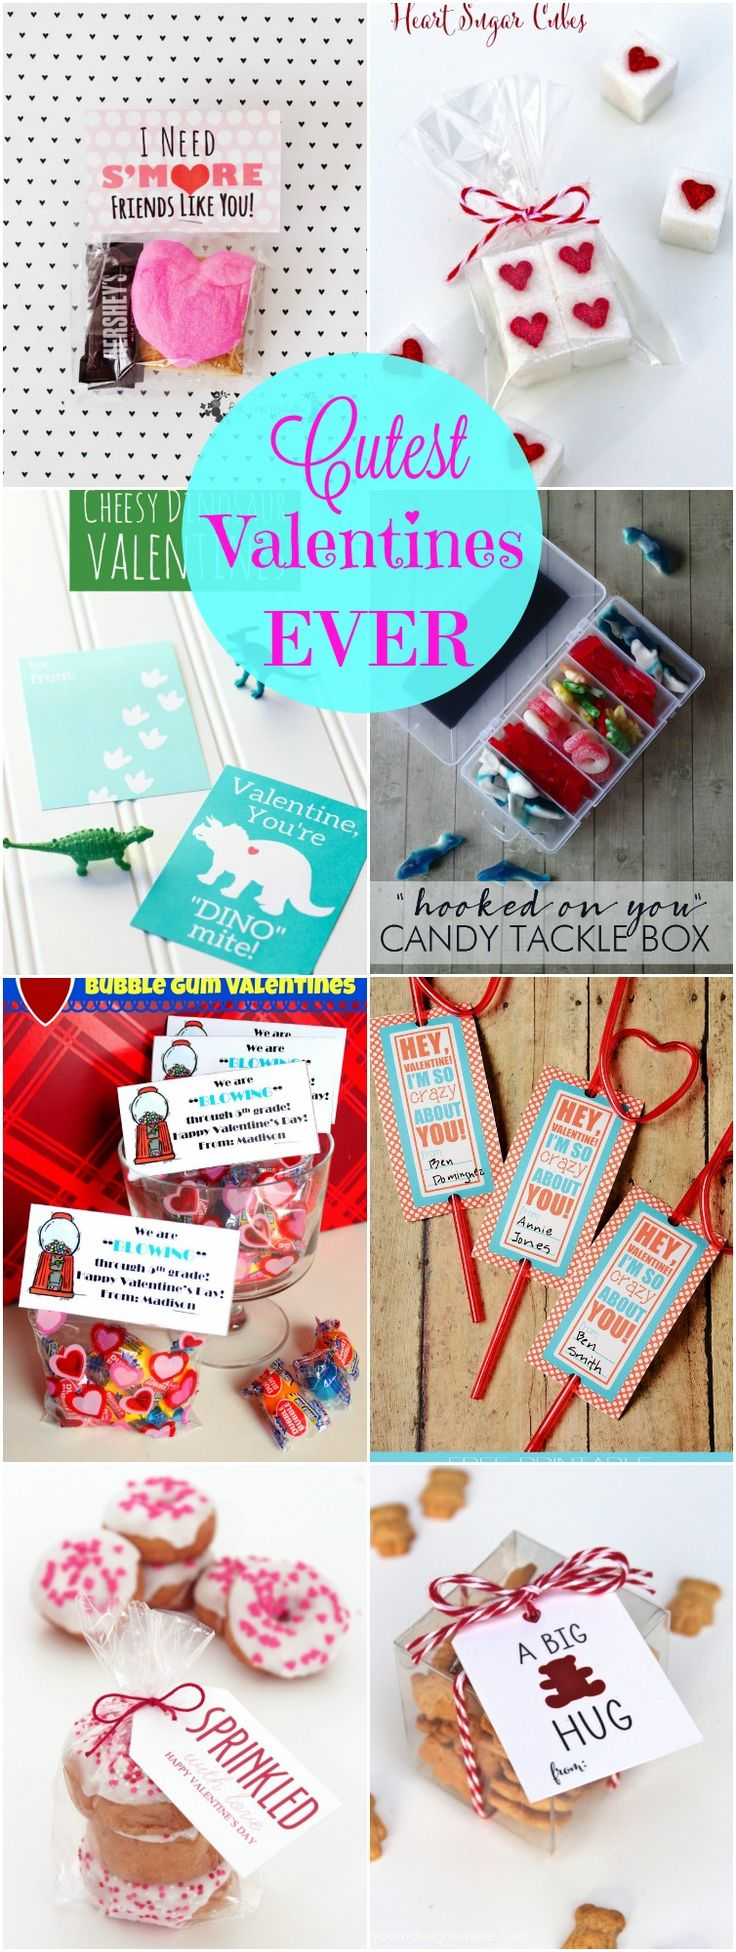 259 best Valentine\'s Day images on Pinterest | Day care, Crafts for ...